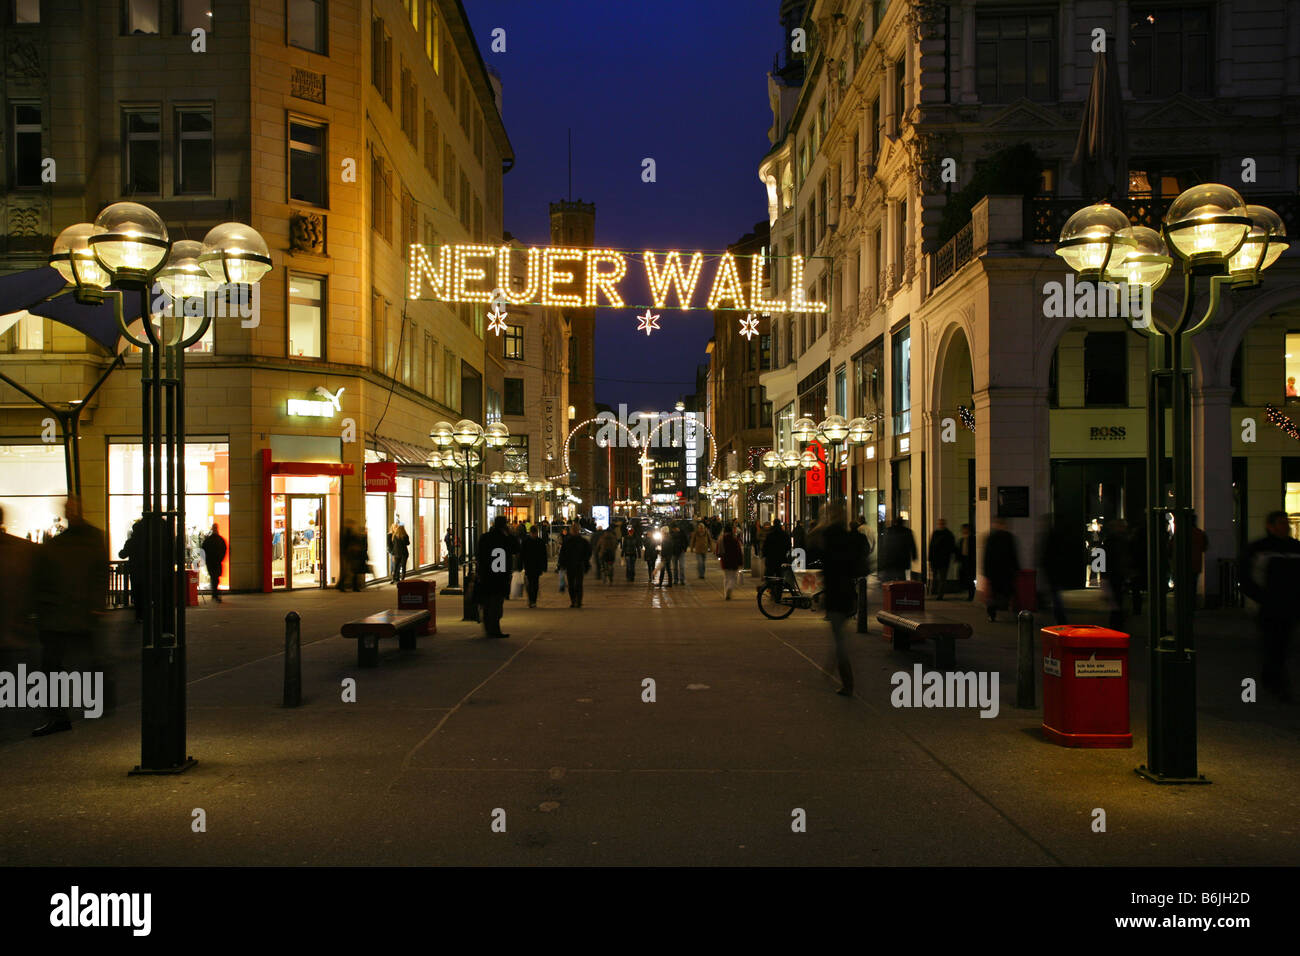 The illuminated city center and high end shopping mall of Neuer Wall in Hamburg, Germany Stock Photo